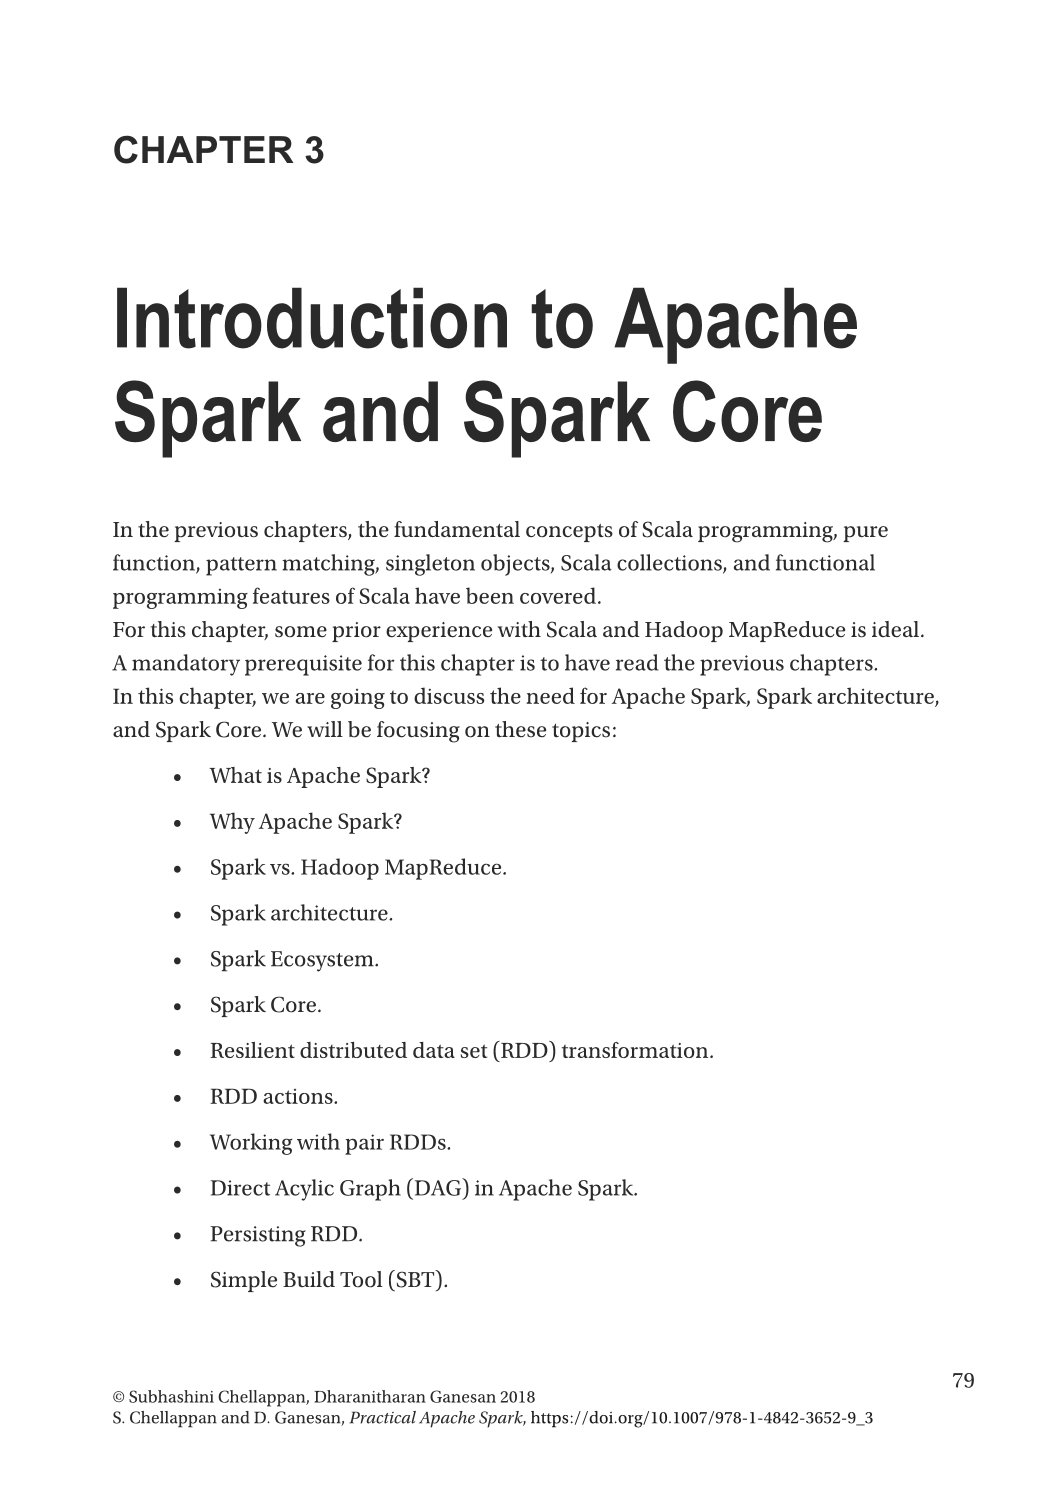 Practical Apache Spark: Using the Scala API-preview-3